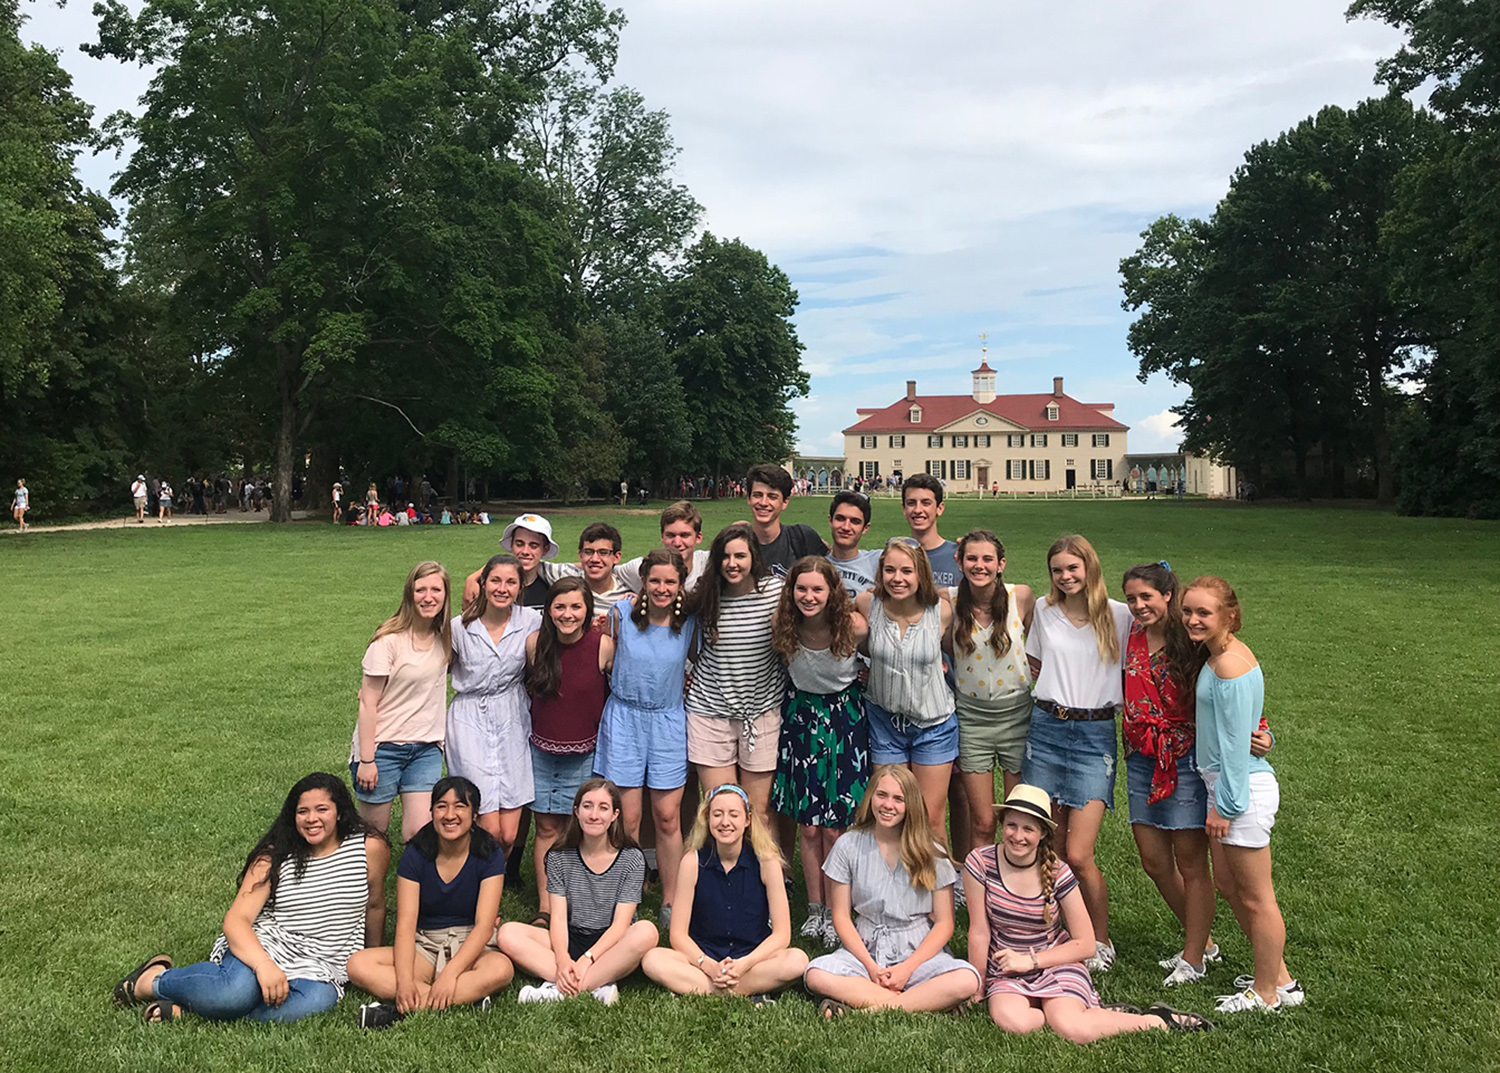 S of O juniors on class trip May 22 - June 1 visit Mount Vernon.